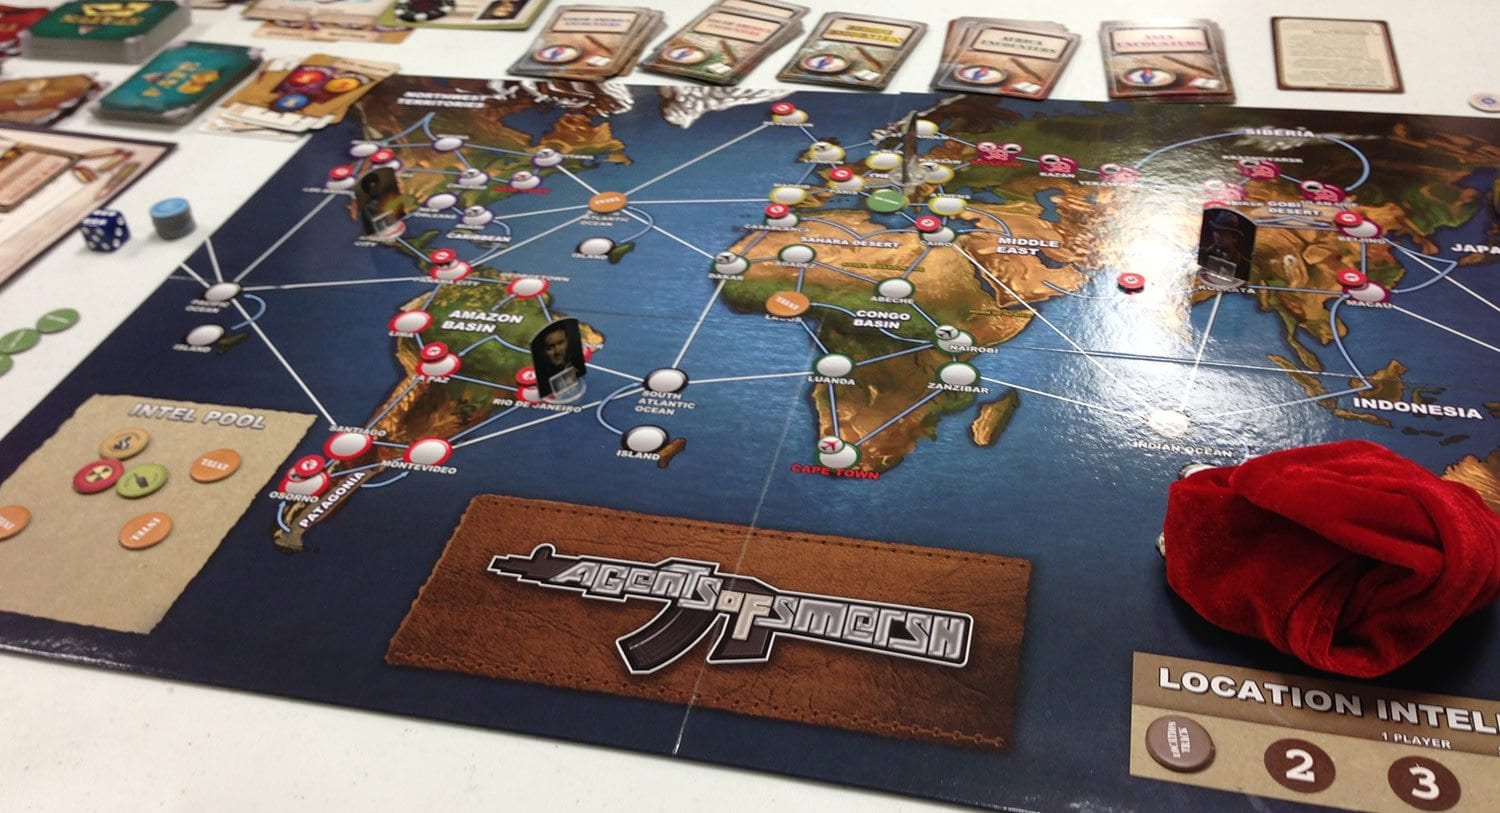 agents of smersh bond games